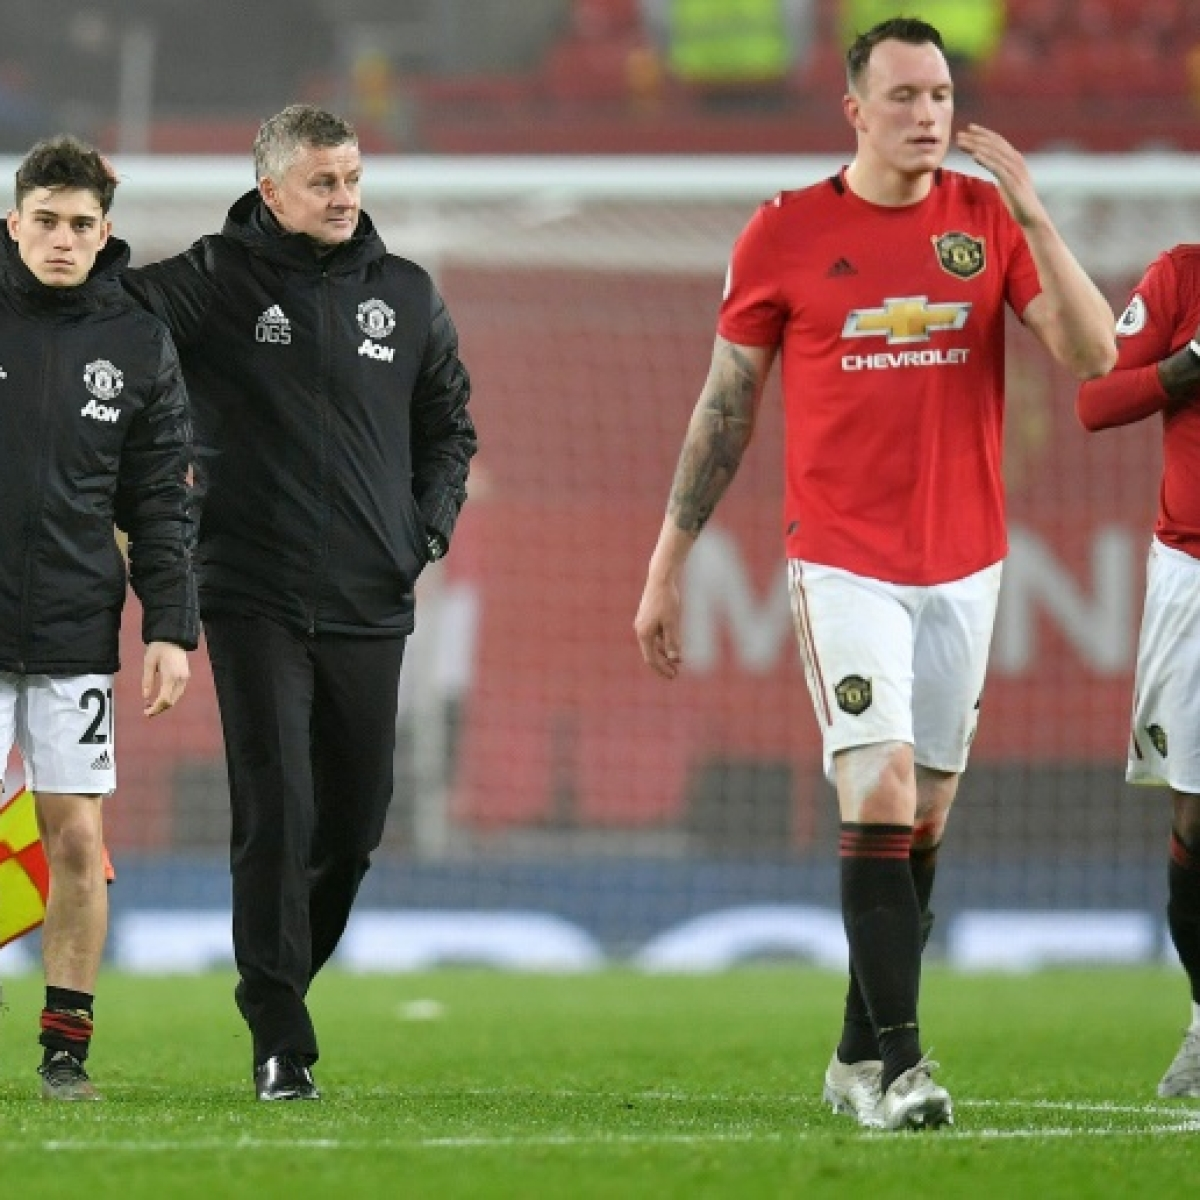 'The club is an embarrassment': Twitter destroys MU after a humiliating defeat